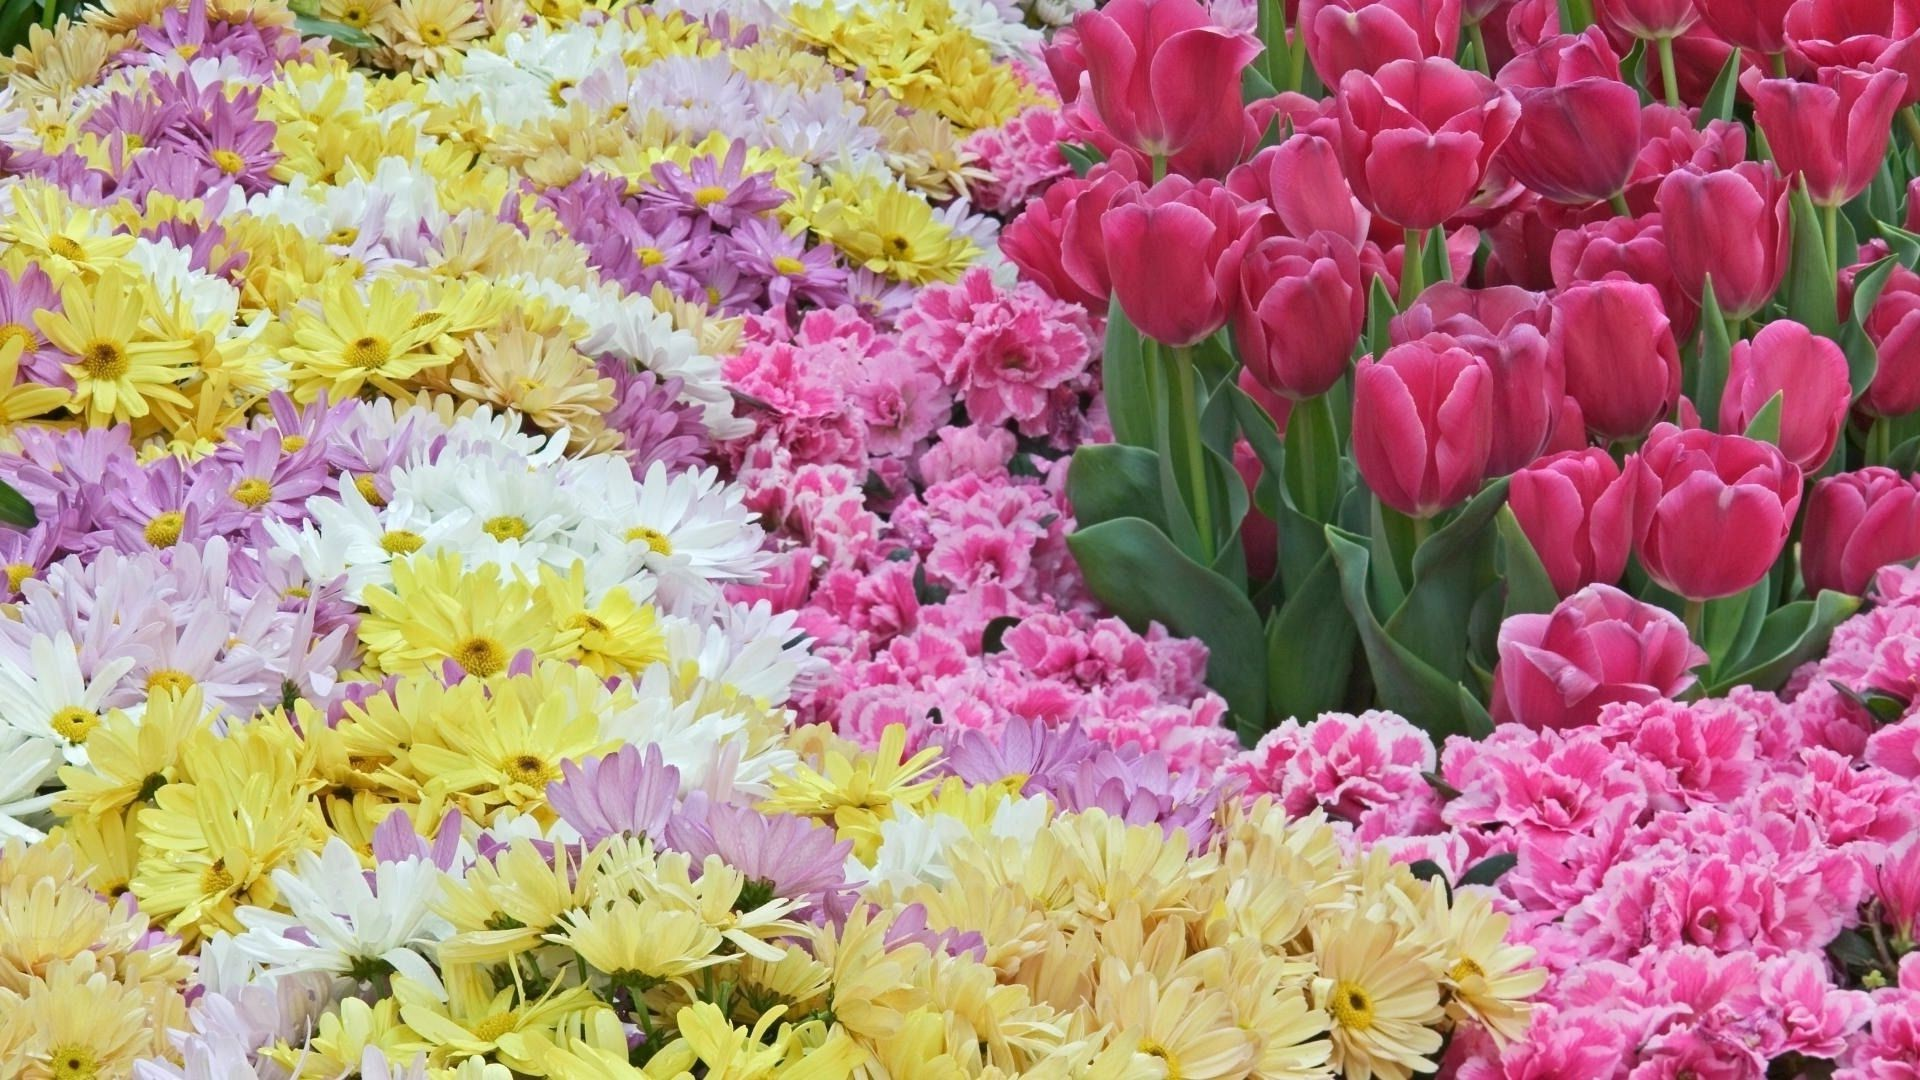 spring chrysanthemum Flowers many pink tulips